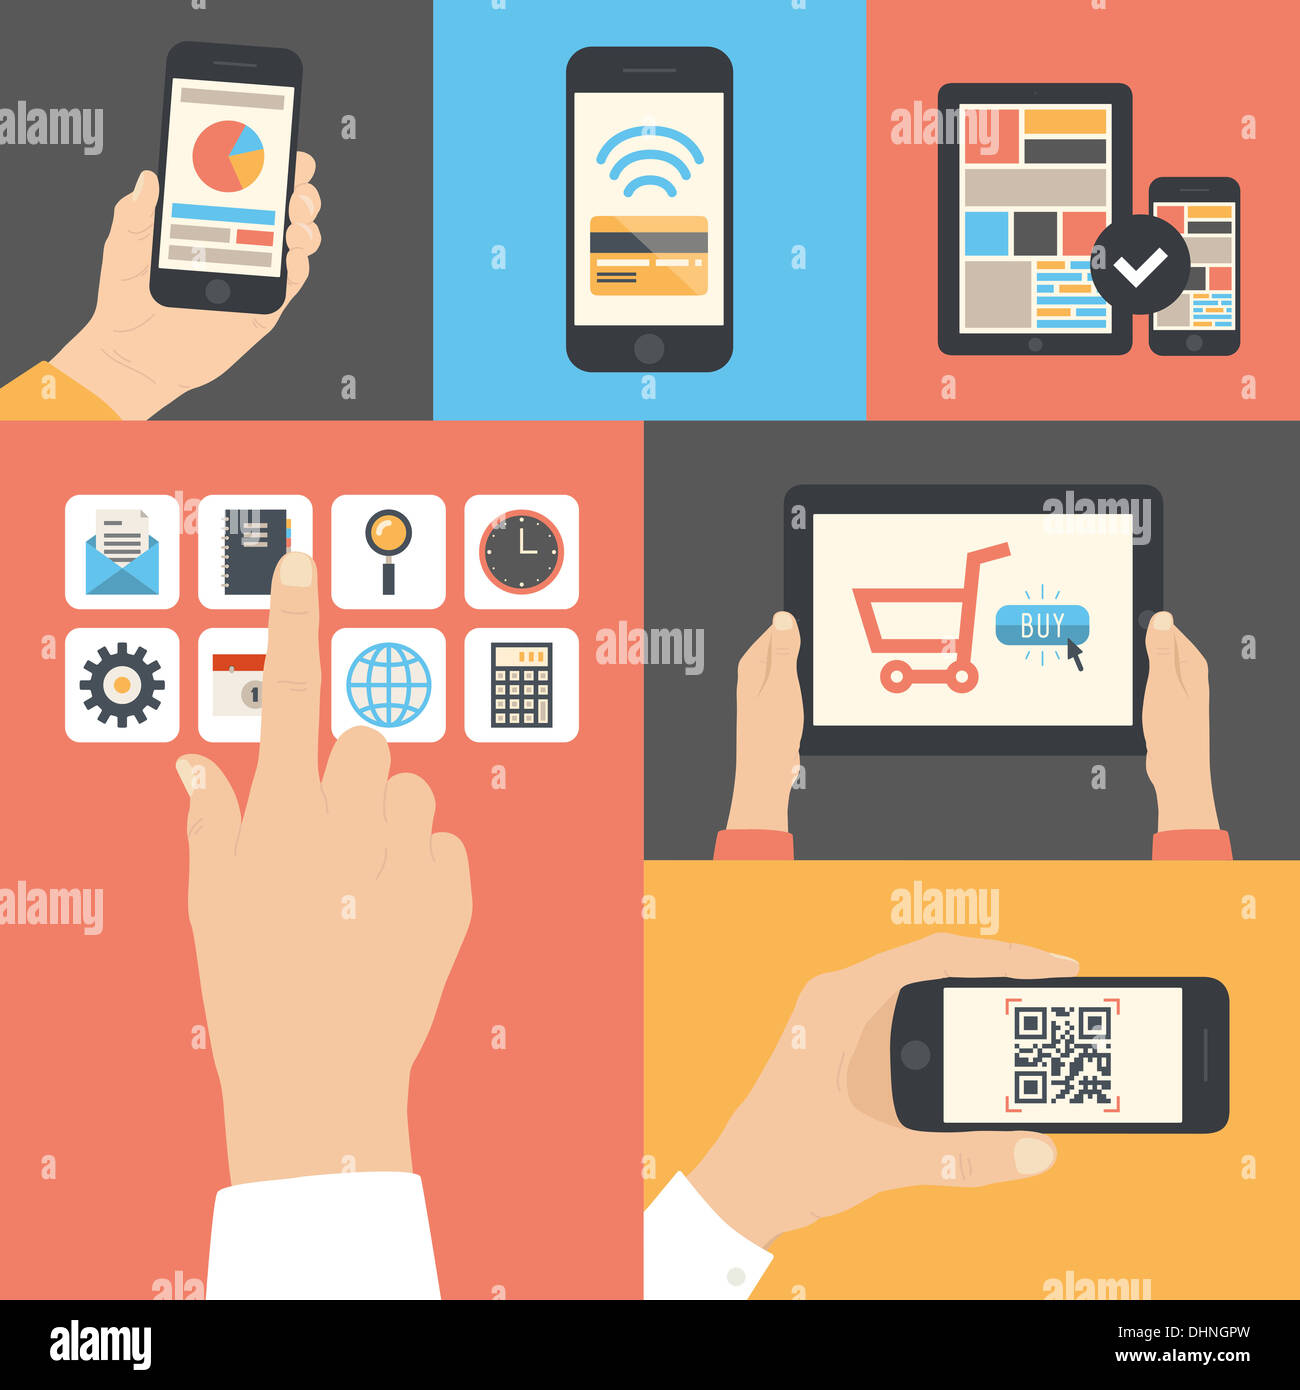 Flat illustration set of touch screen interface, mobile phone scanning qr-code, on-line purchase and e-commerce - Stock Image